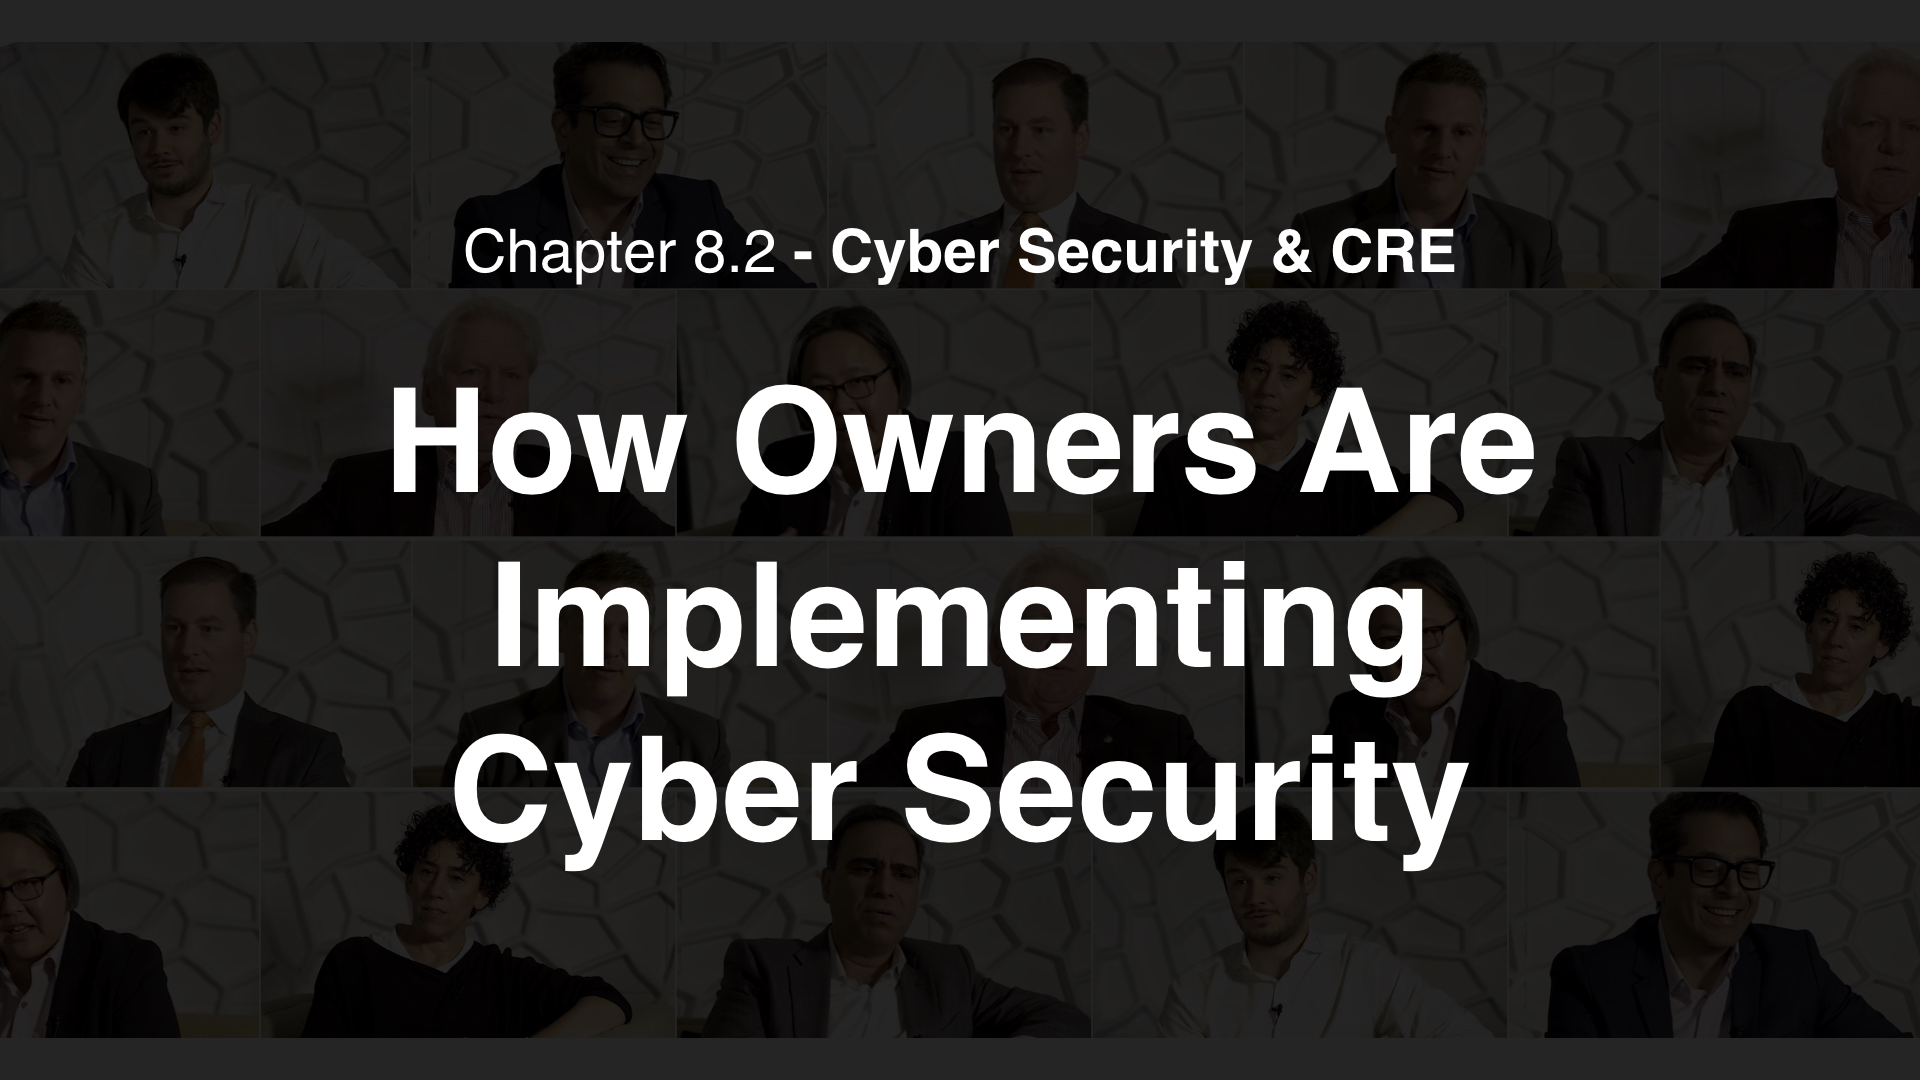 8.2 - How Owners Are Implementing Cyber Security